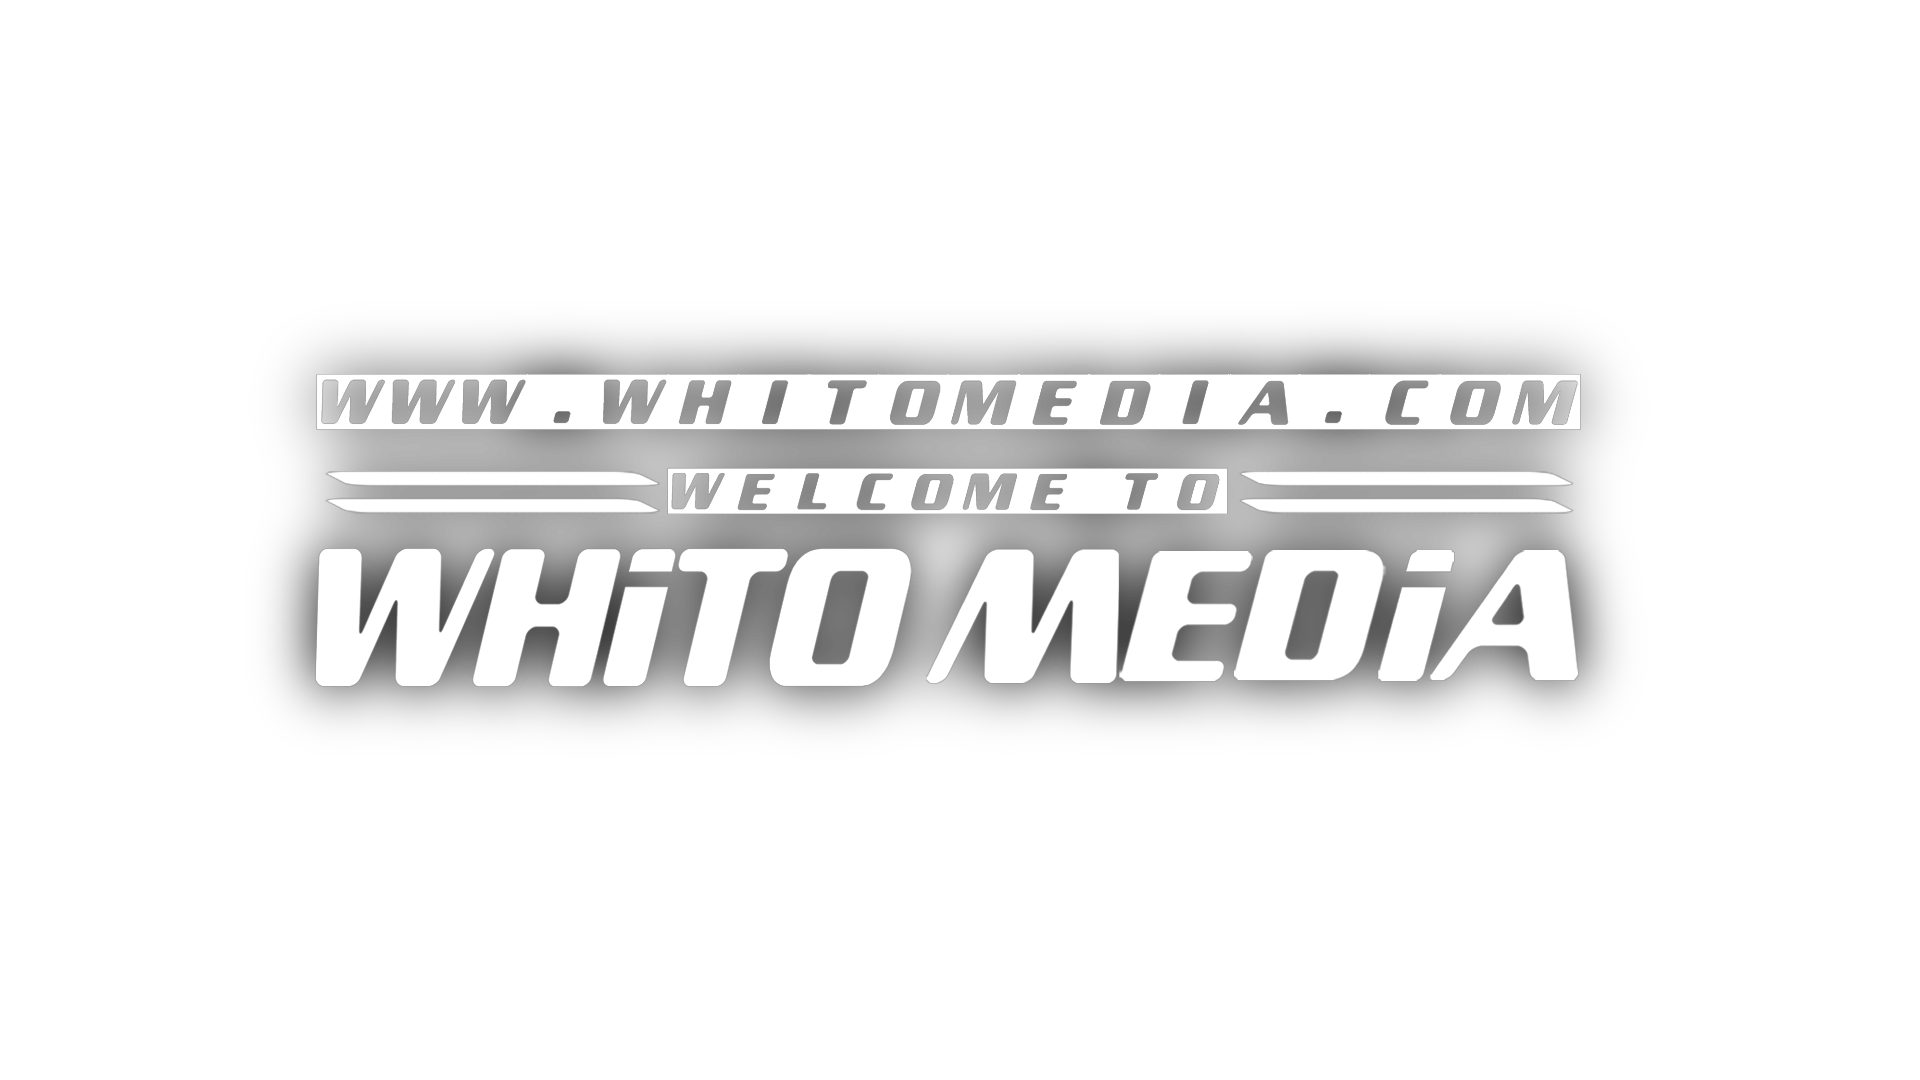 welcome to whitomedia